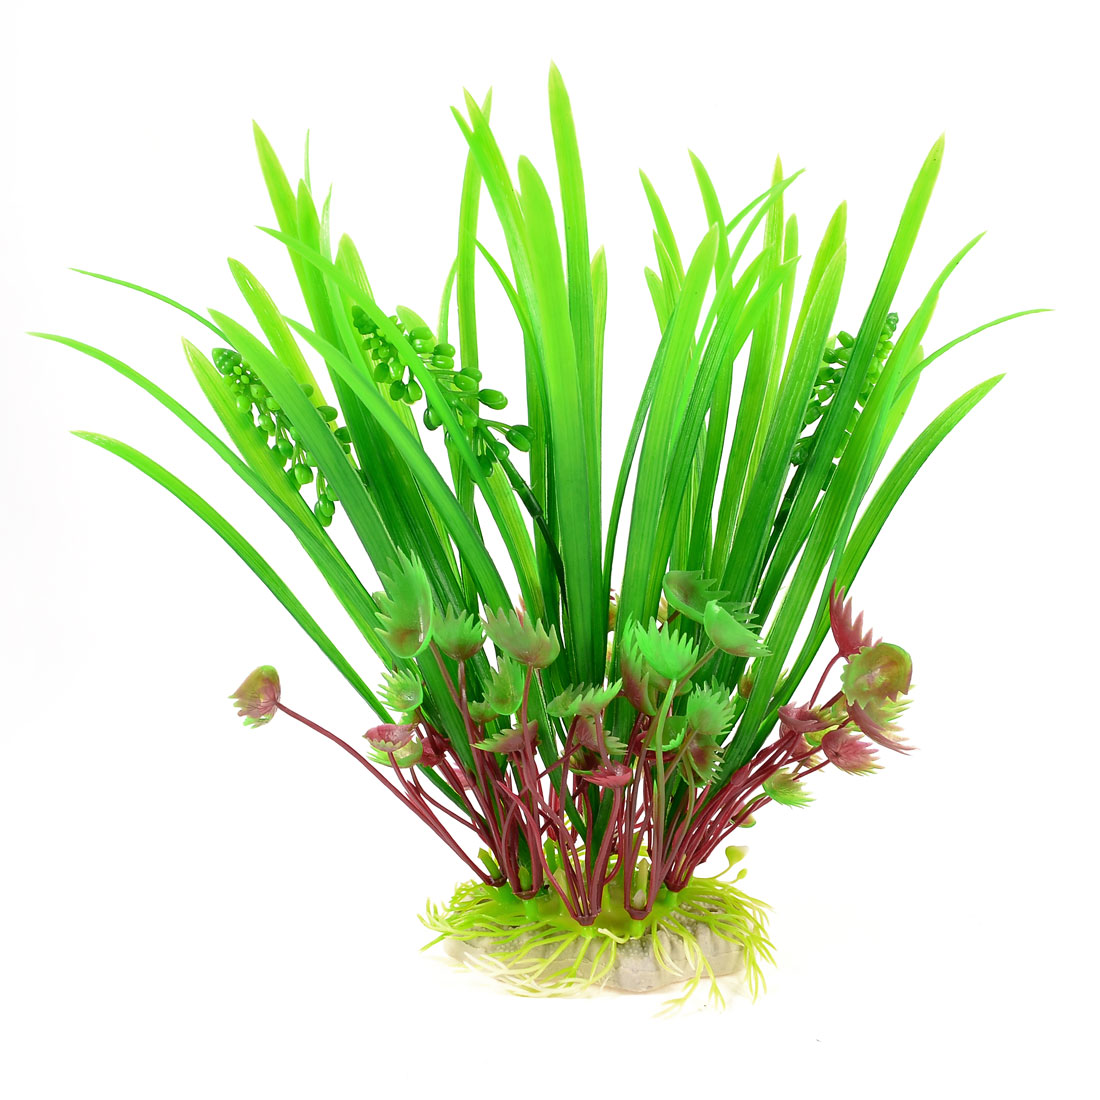 "Aquarium Ornament Plastic Water Plant Green Burgundy w Oval Base 3.3"" x 1.8"""